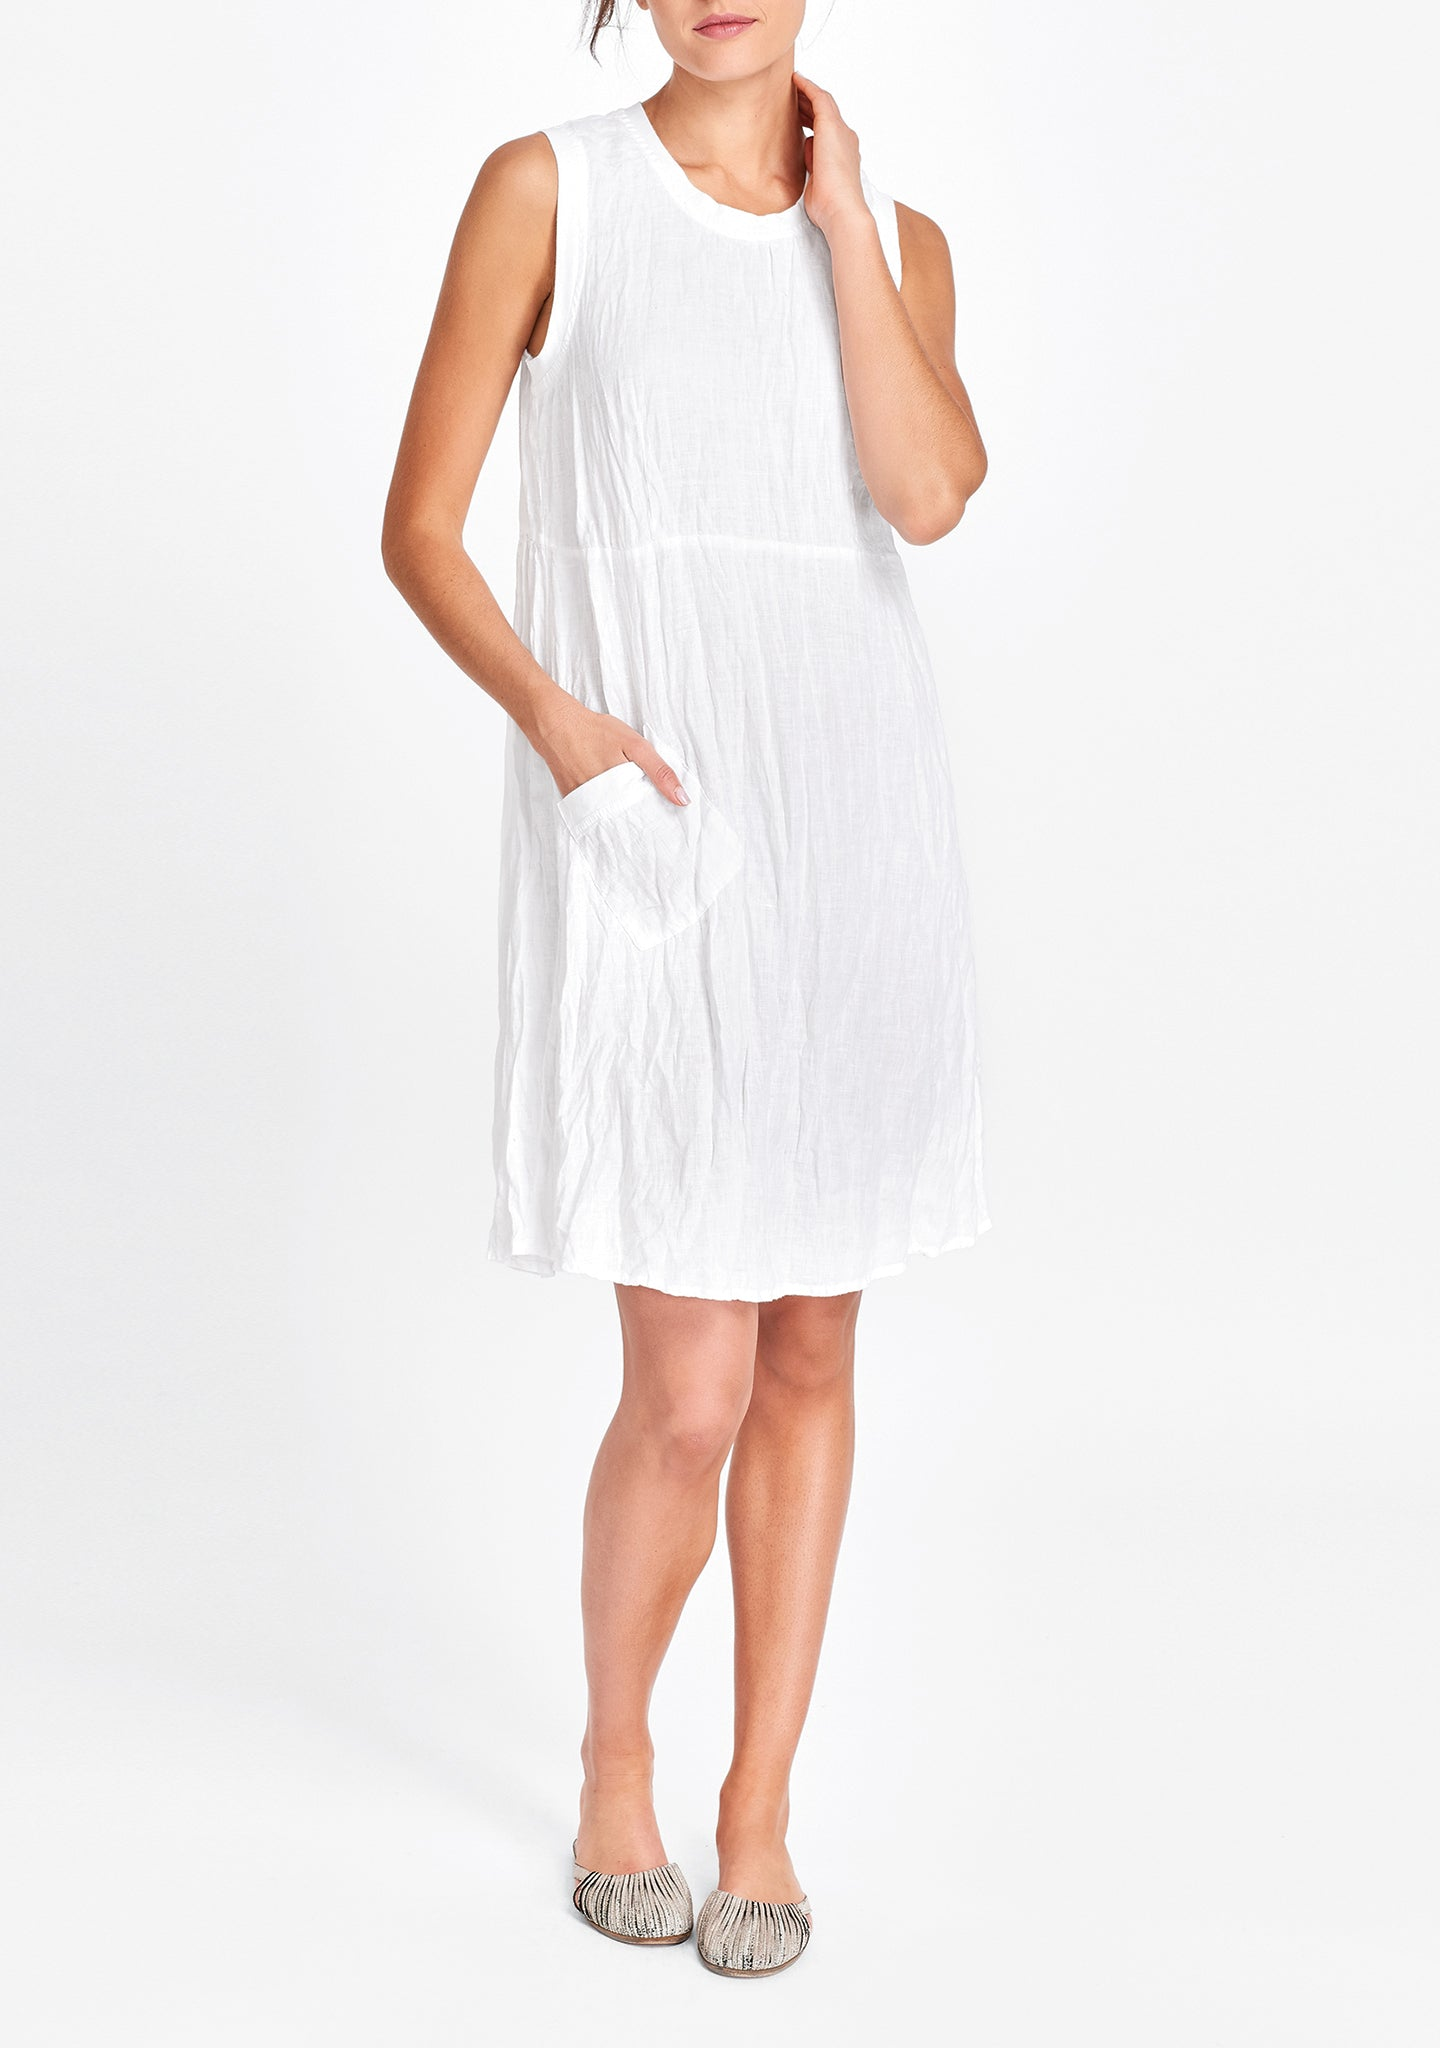 work/play dress white